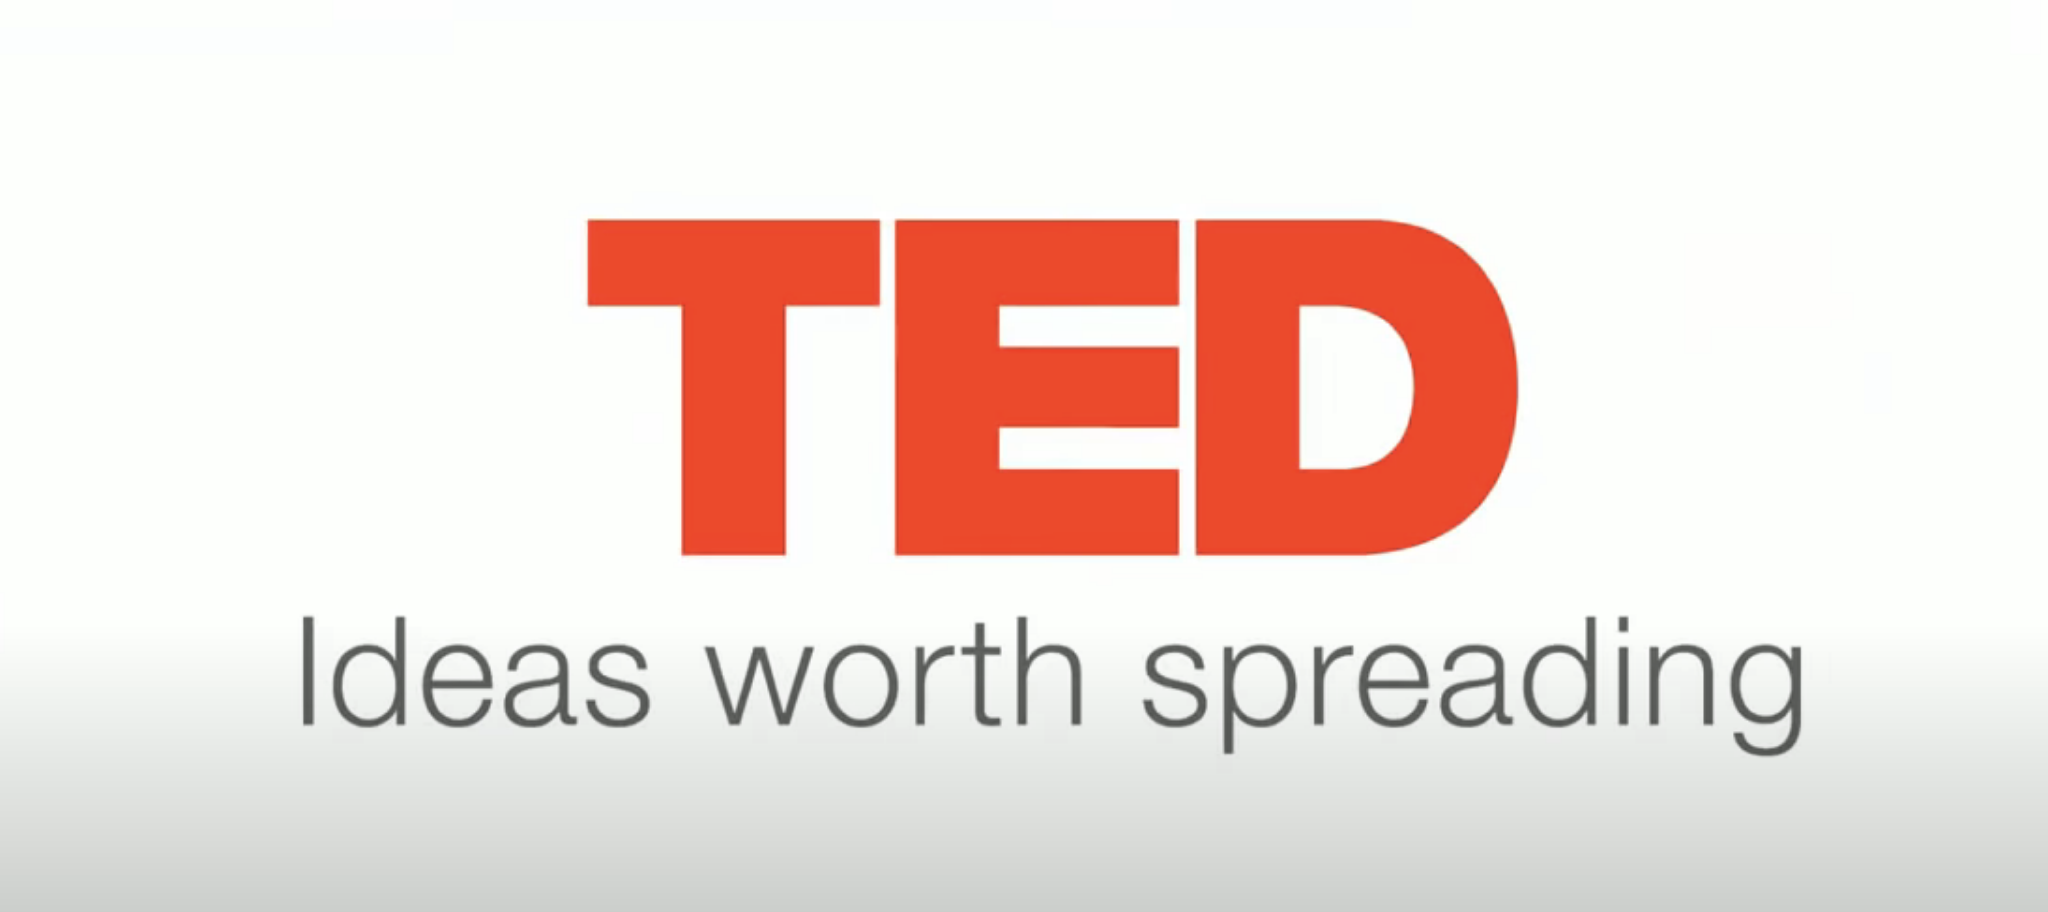 TED's secret to great public speaking | Chris Anderson